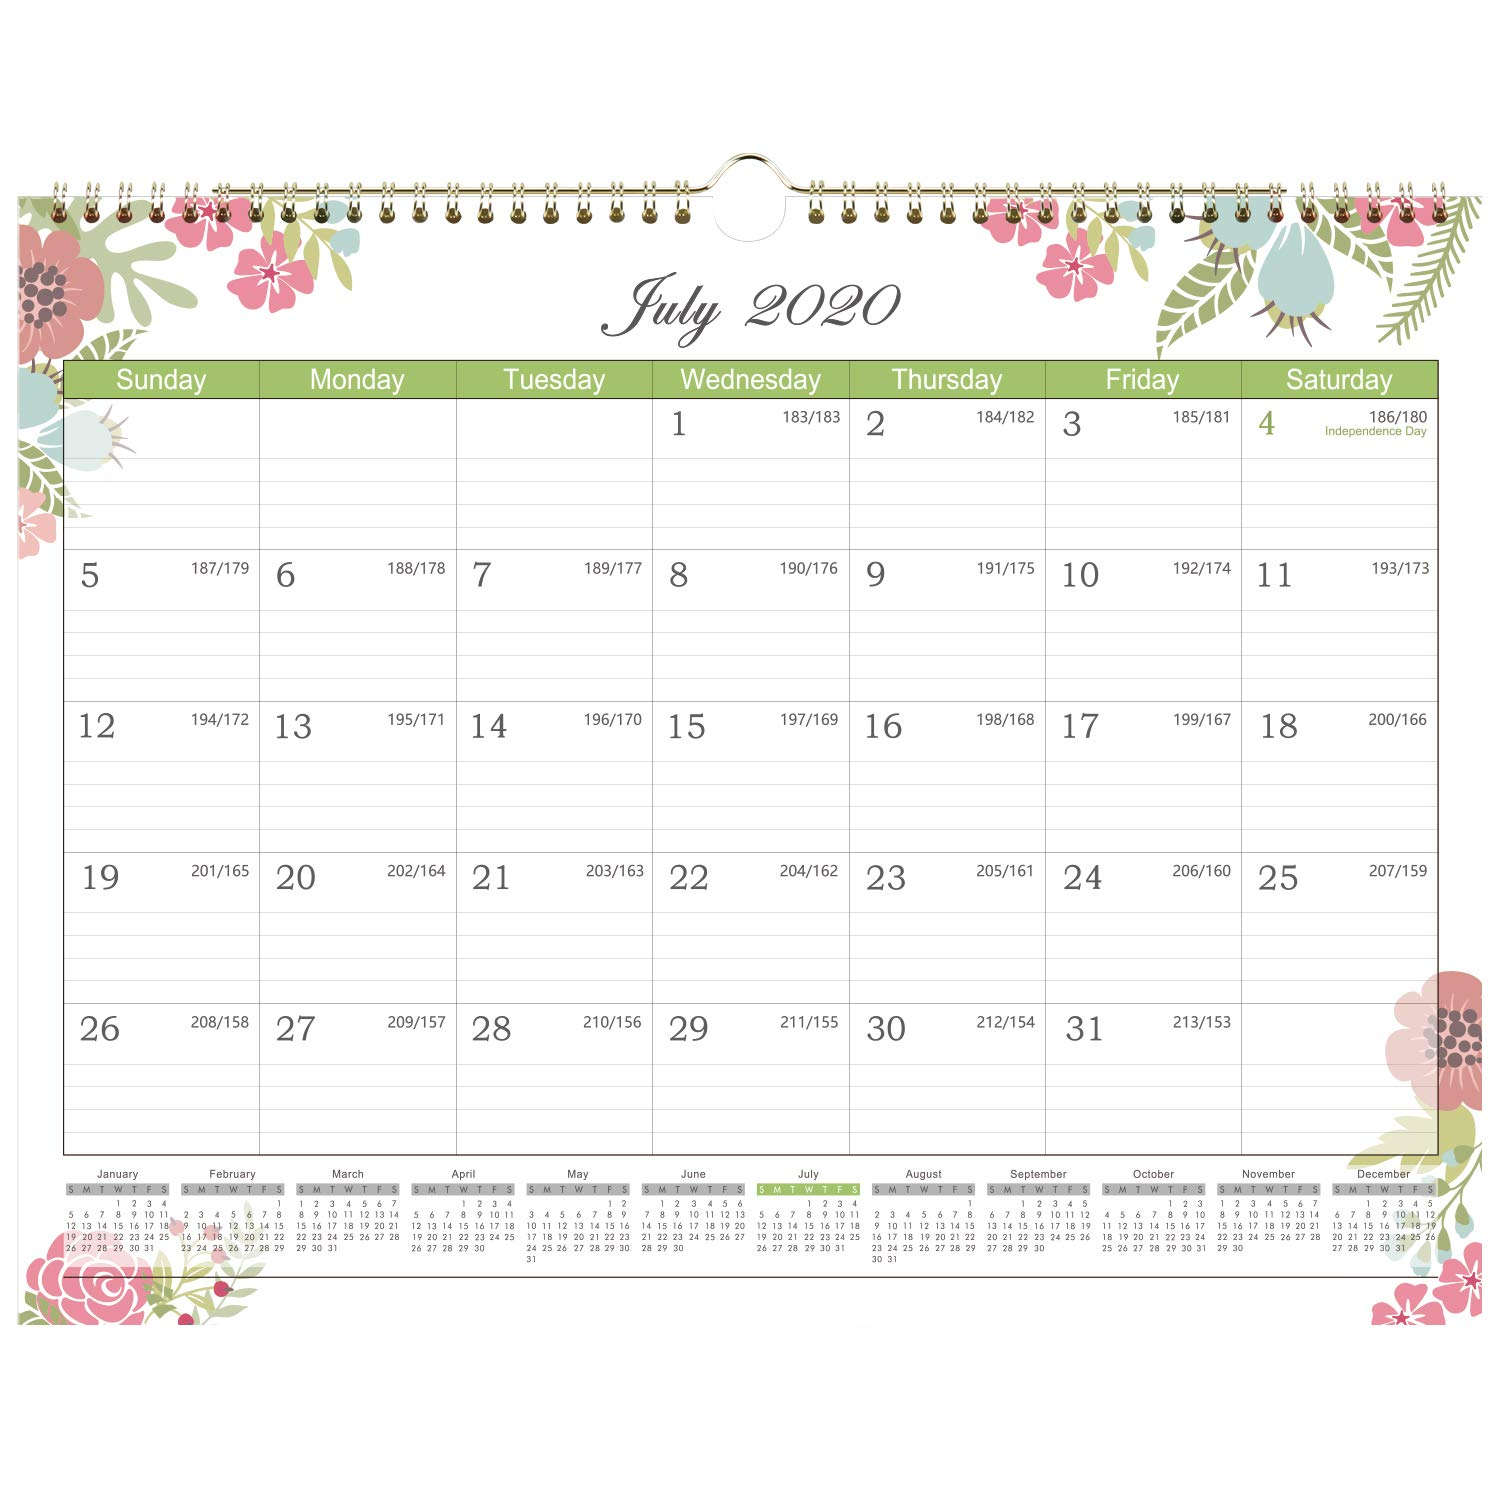 Lemome - 2020-20201 Calendar - 18 Months Wall Calendar with Julian Date, Jan. 2020 - Jun. 2021. Thick Paper Perfect for Organizing & Planning, Ruled Blocks, 15 x 11.5 Inches, Sturdy Gold Wirebound